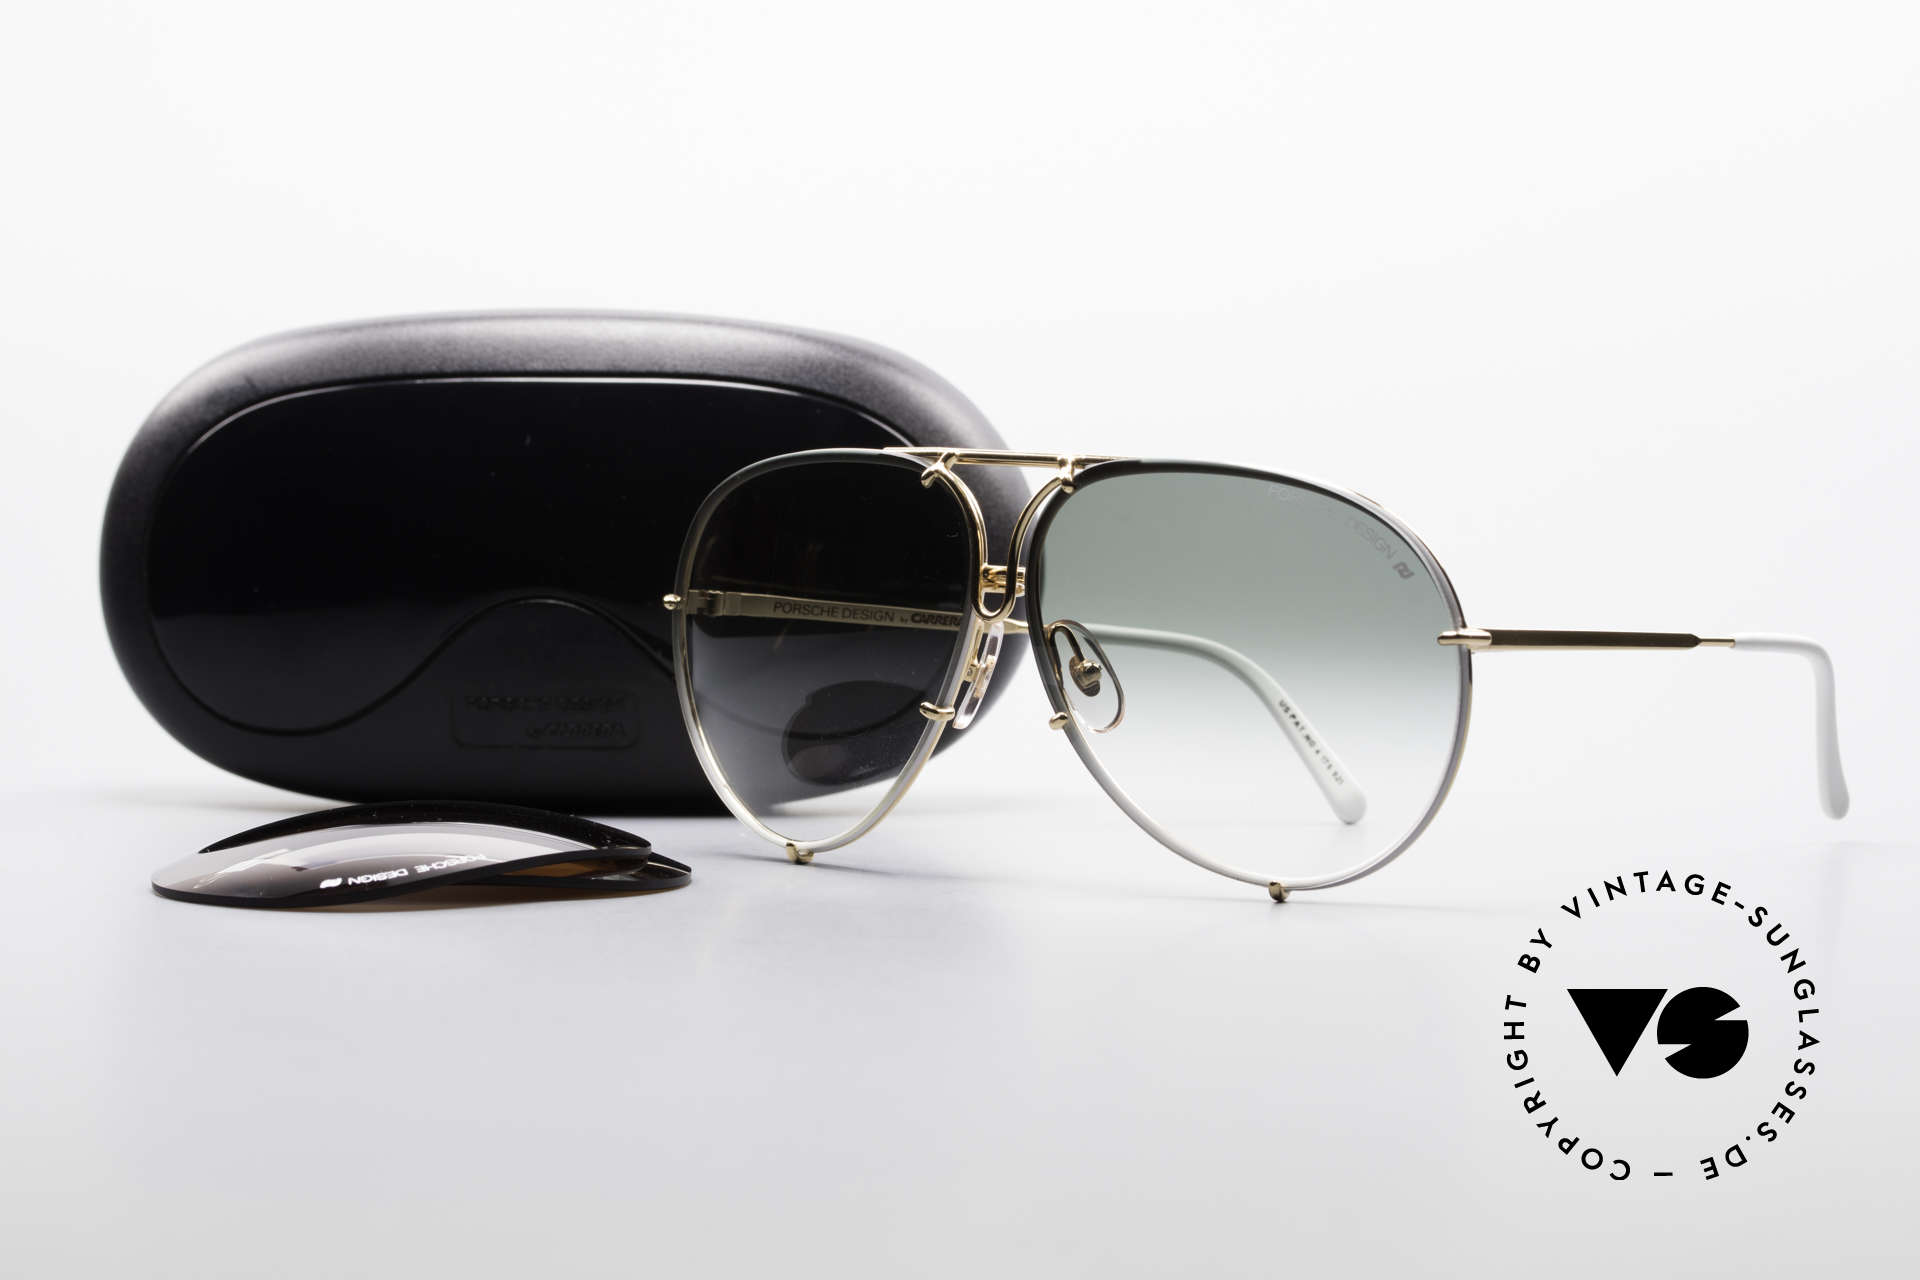 Porsche 5623 Special Edition Vintage Shades, LIMITED SPECIAL EDITION = gold-plated / white frame, Made for Men and Women